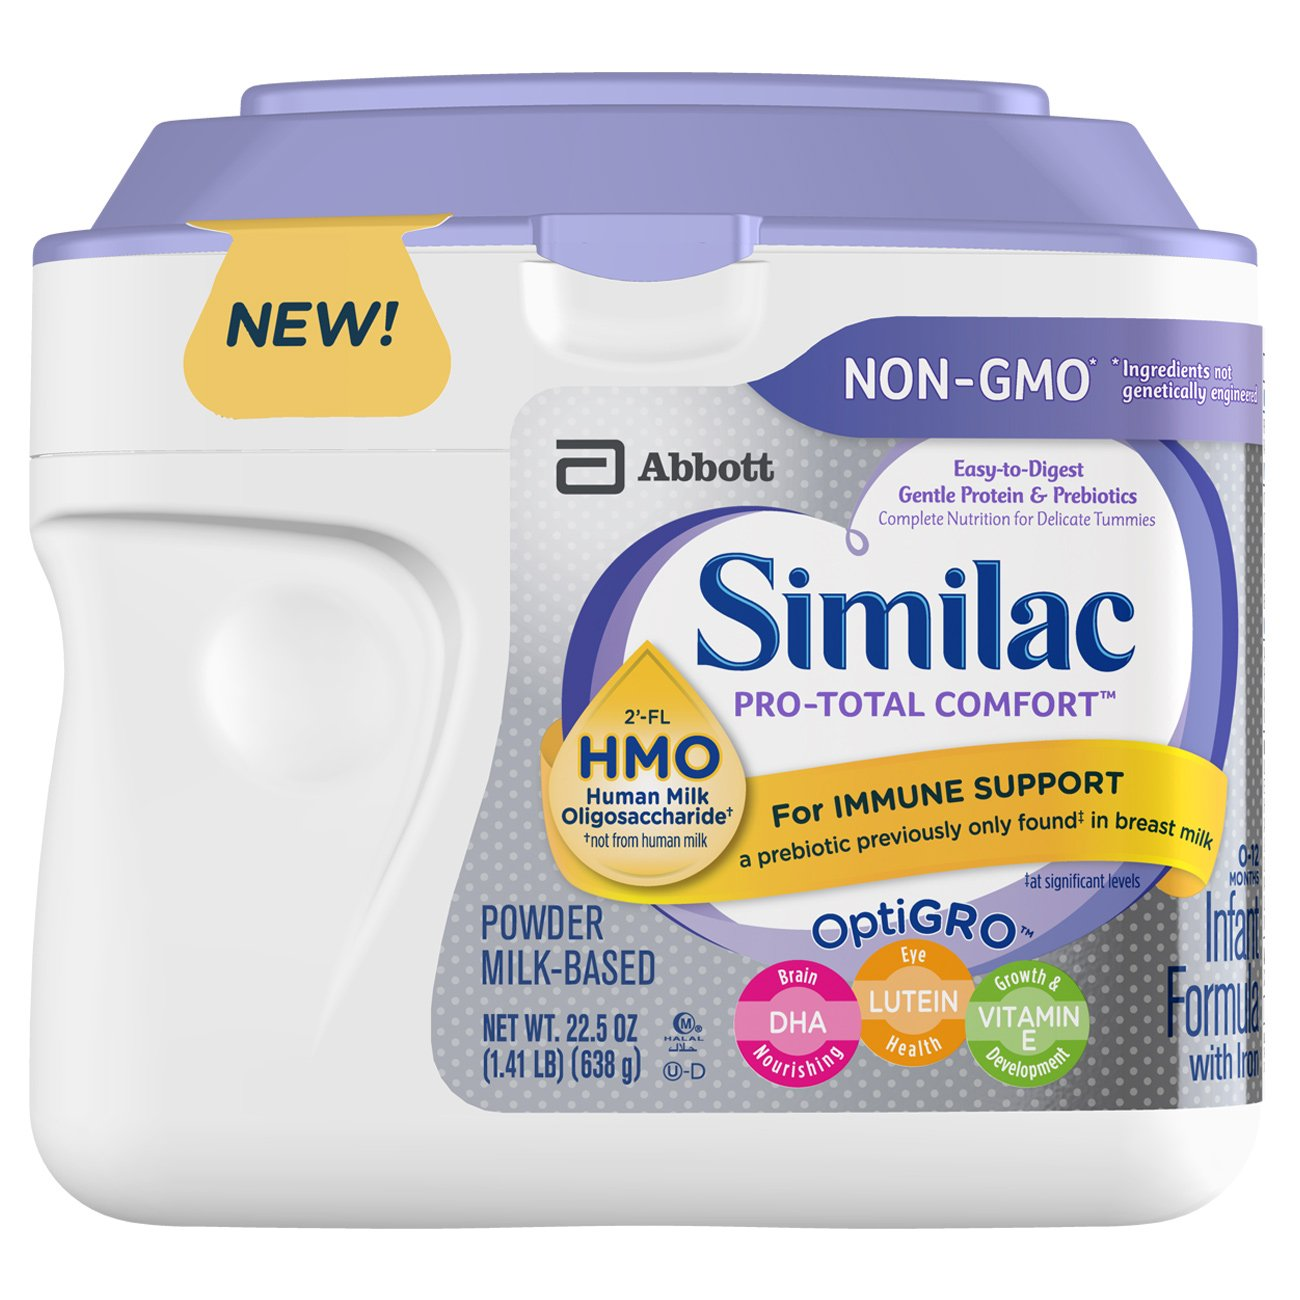 Similac Pro-Total Comfort Infant Formula, Non-GMO, Easy-to-Digest, Gentle Formula, with 2'-FL Hmo, for Immune Support, Baby Formula, Powder, 36 oz, 3 Count (One Month Supply) with 2'-FL Hmo ABBN7 - pallet ordering 070074667966